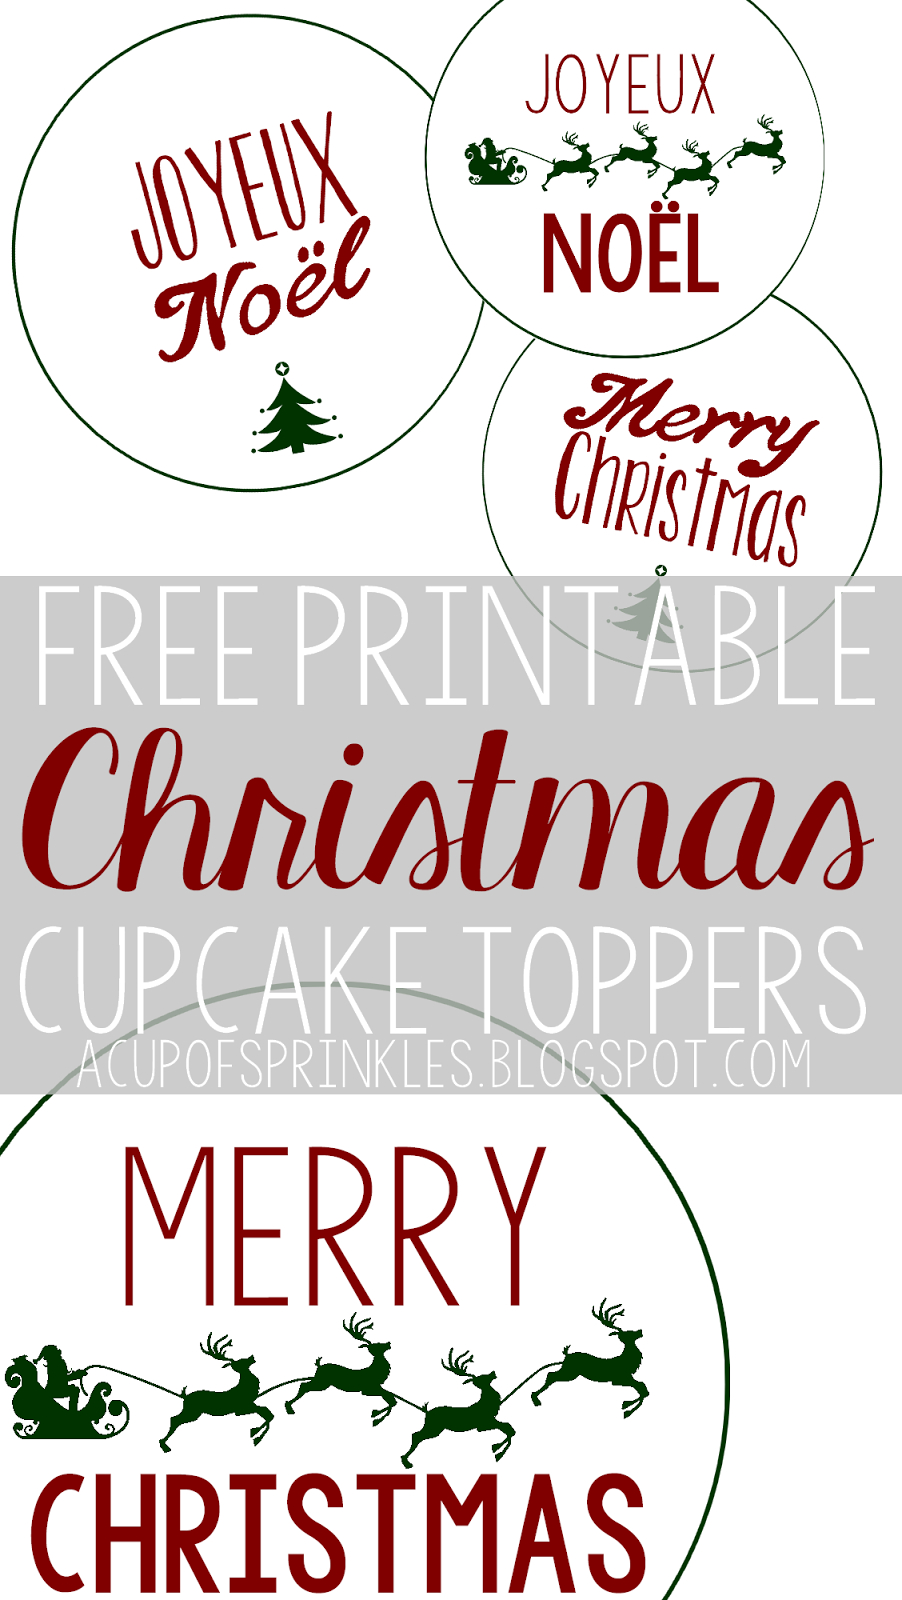 Free Printable : Christmas Cupcake Toppers   A Cup Of Sprinkles - Free Printable Christmas Designs